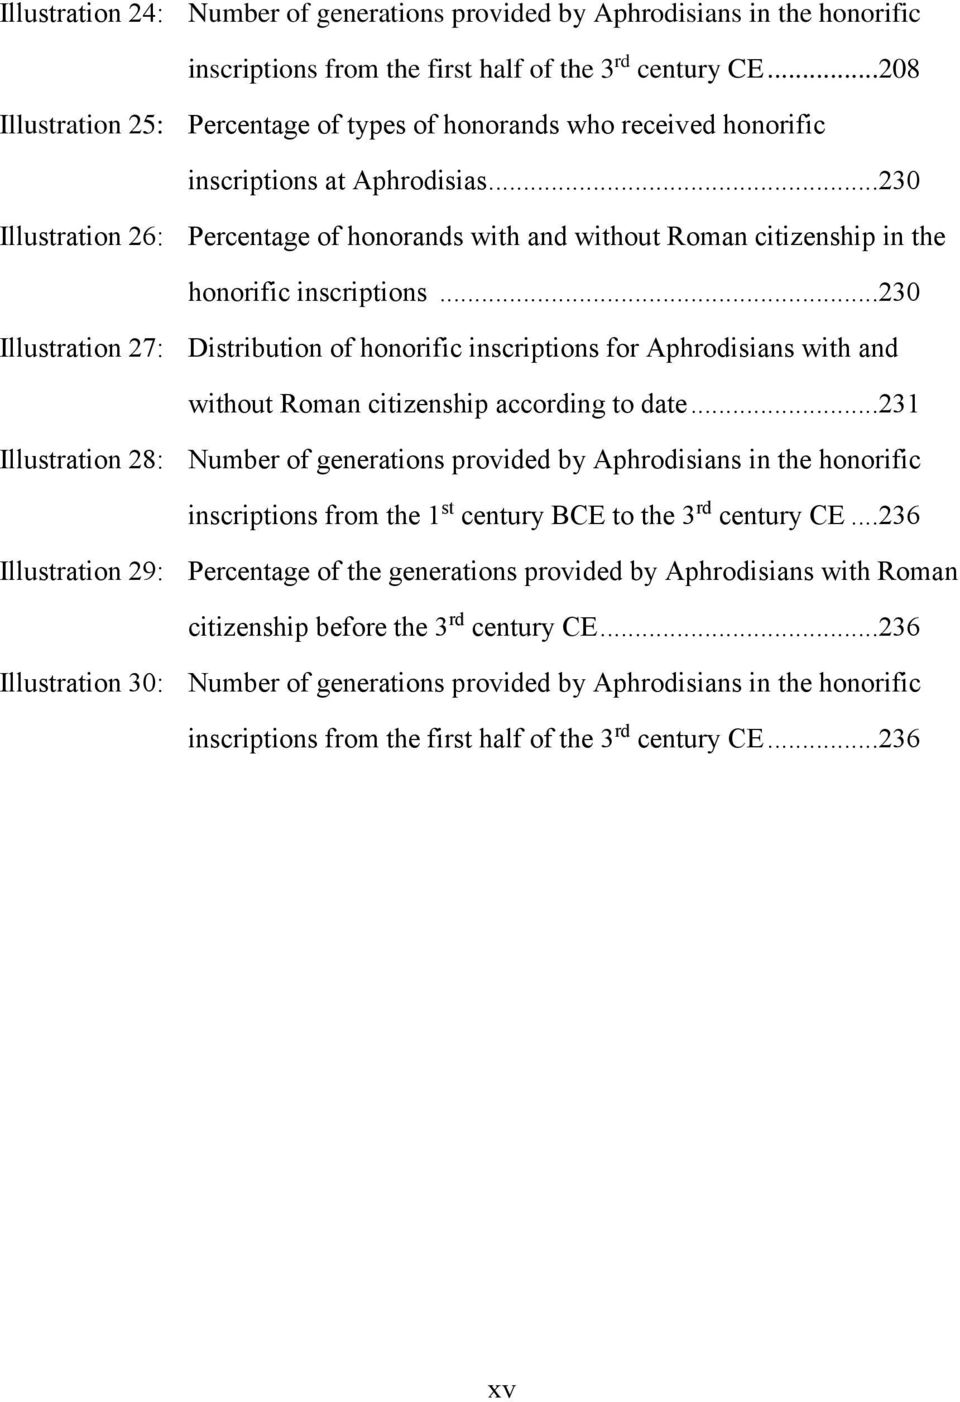 ..230 Illustration 26: Percentage of honorands with and without Roman citizenship in the honorific inscriptions.